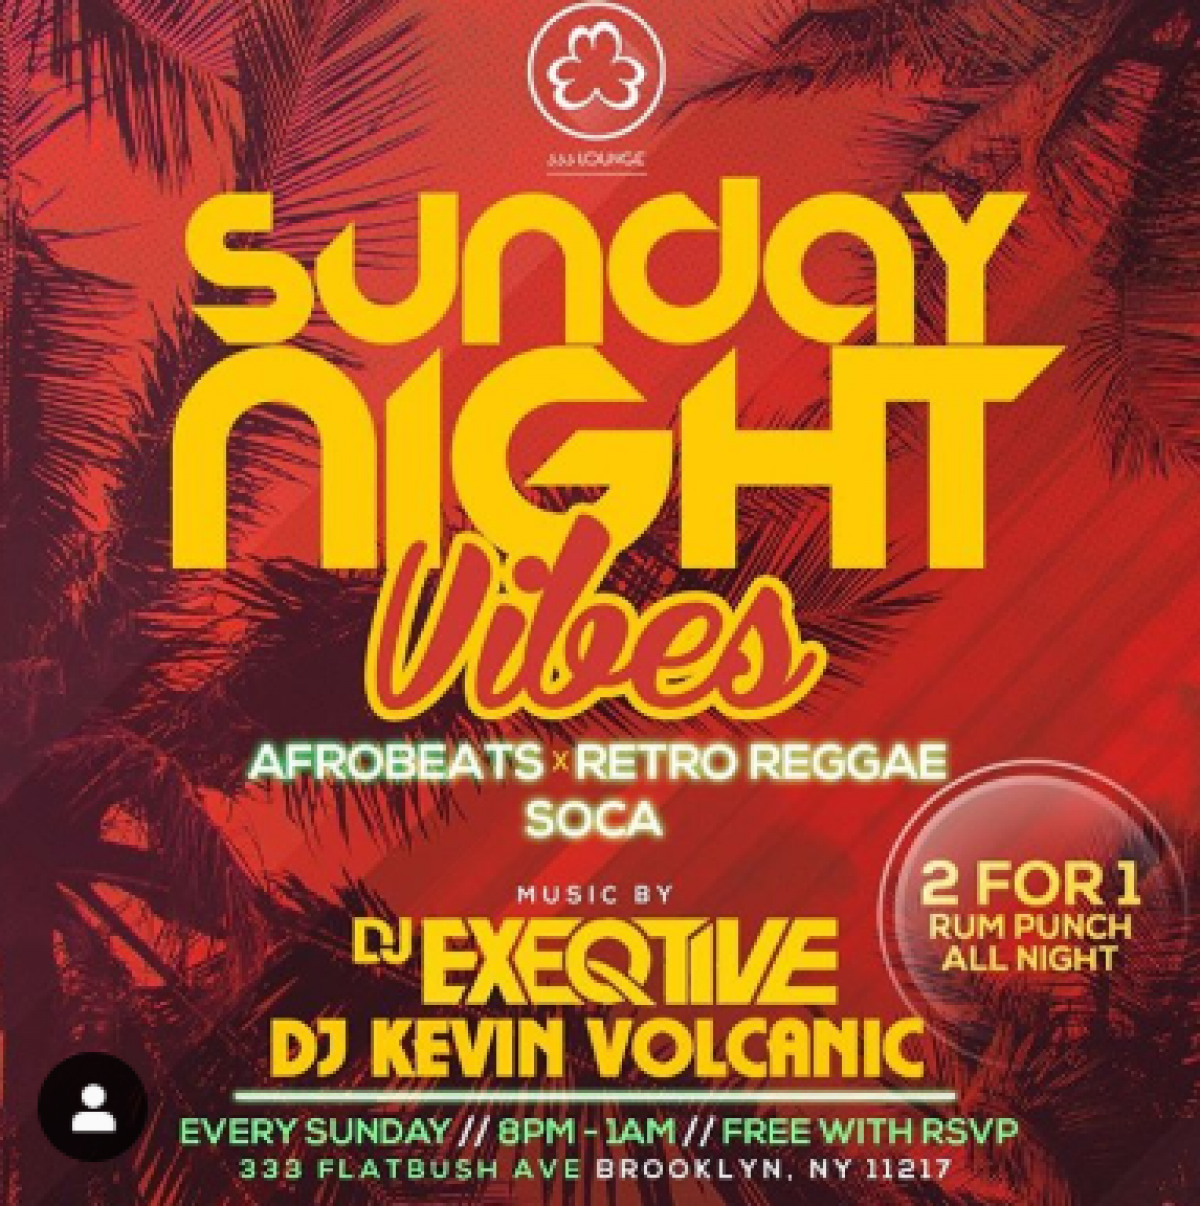 Sunday Night Vibes flyer or graphic.